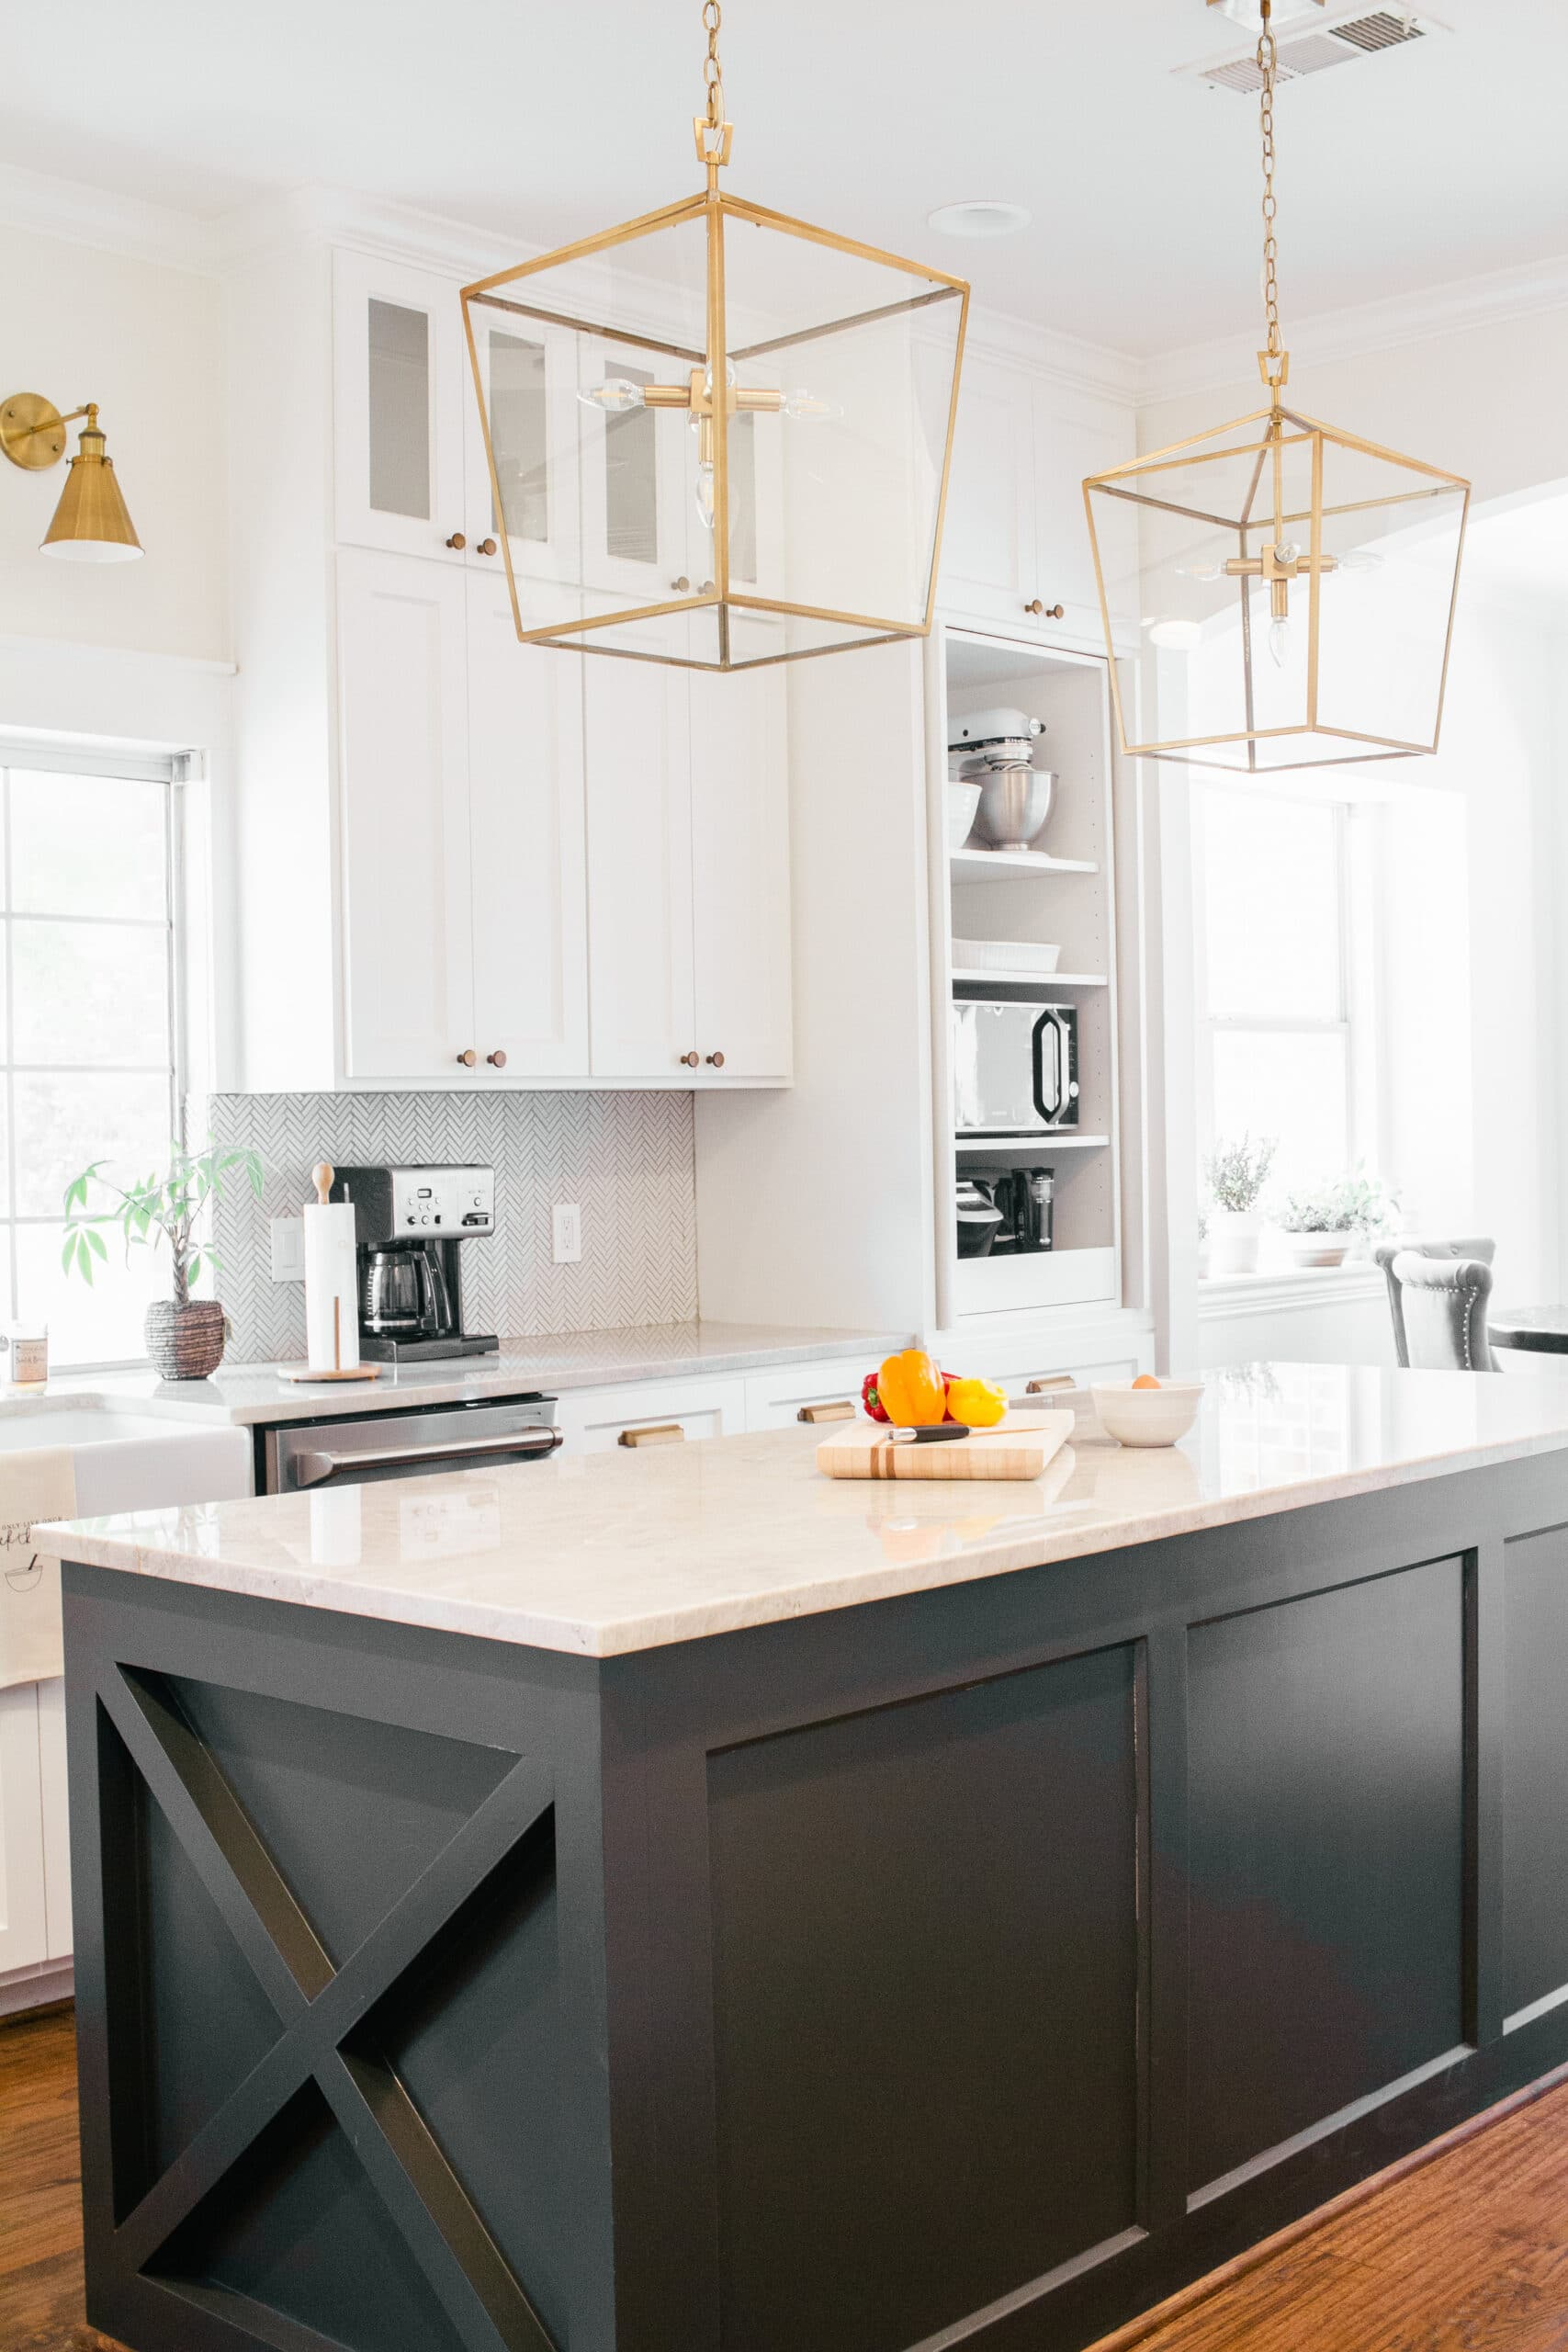 sw iron ore painted kitchen island with pure white cabinets and gold lantern pendants